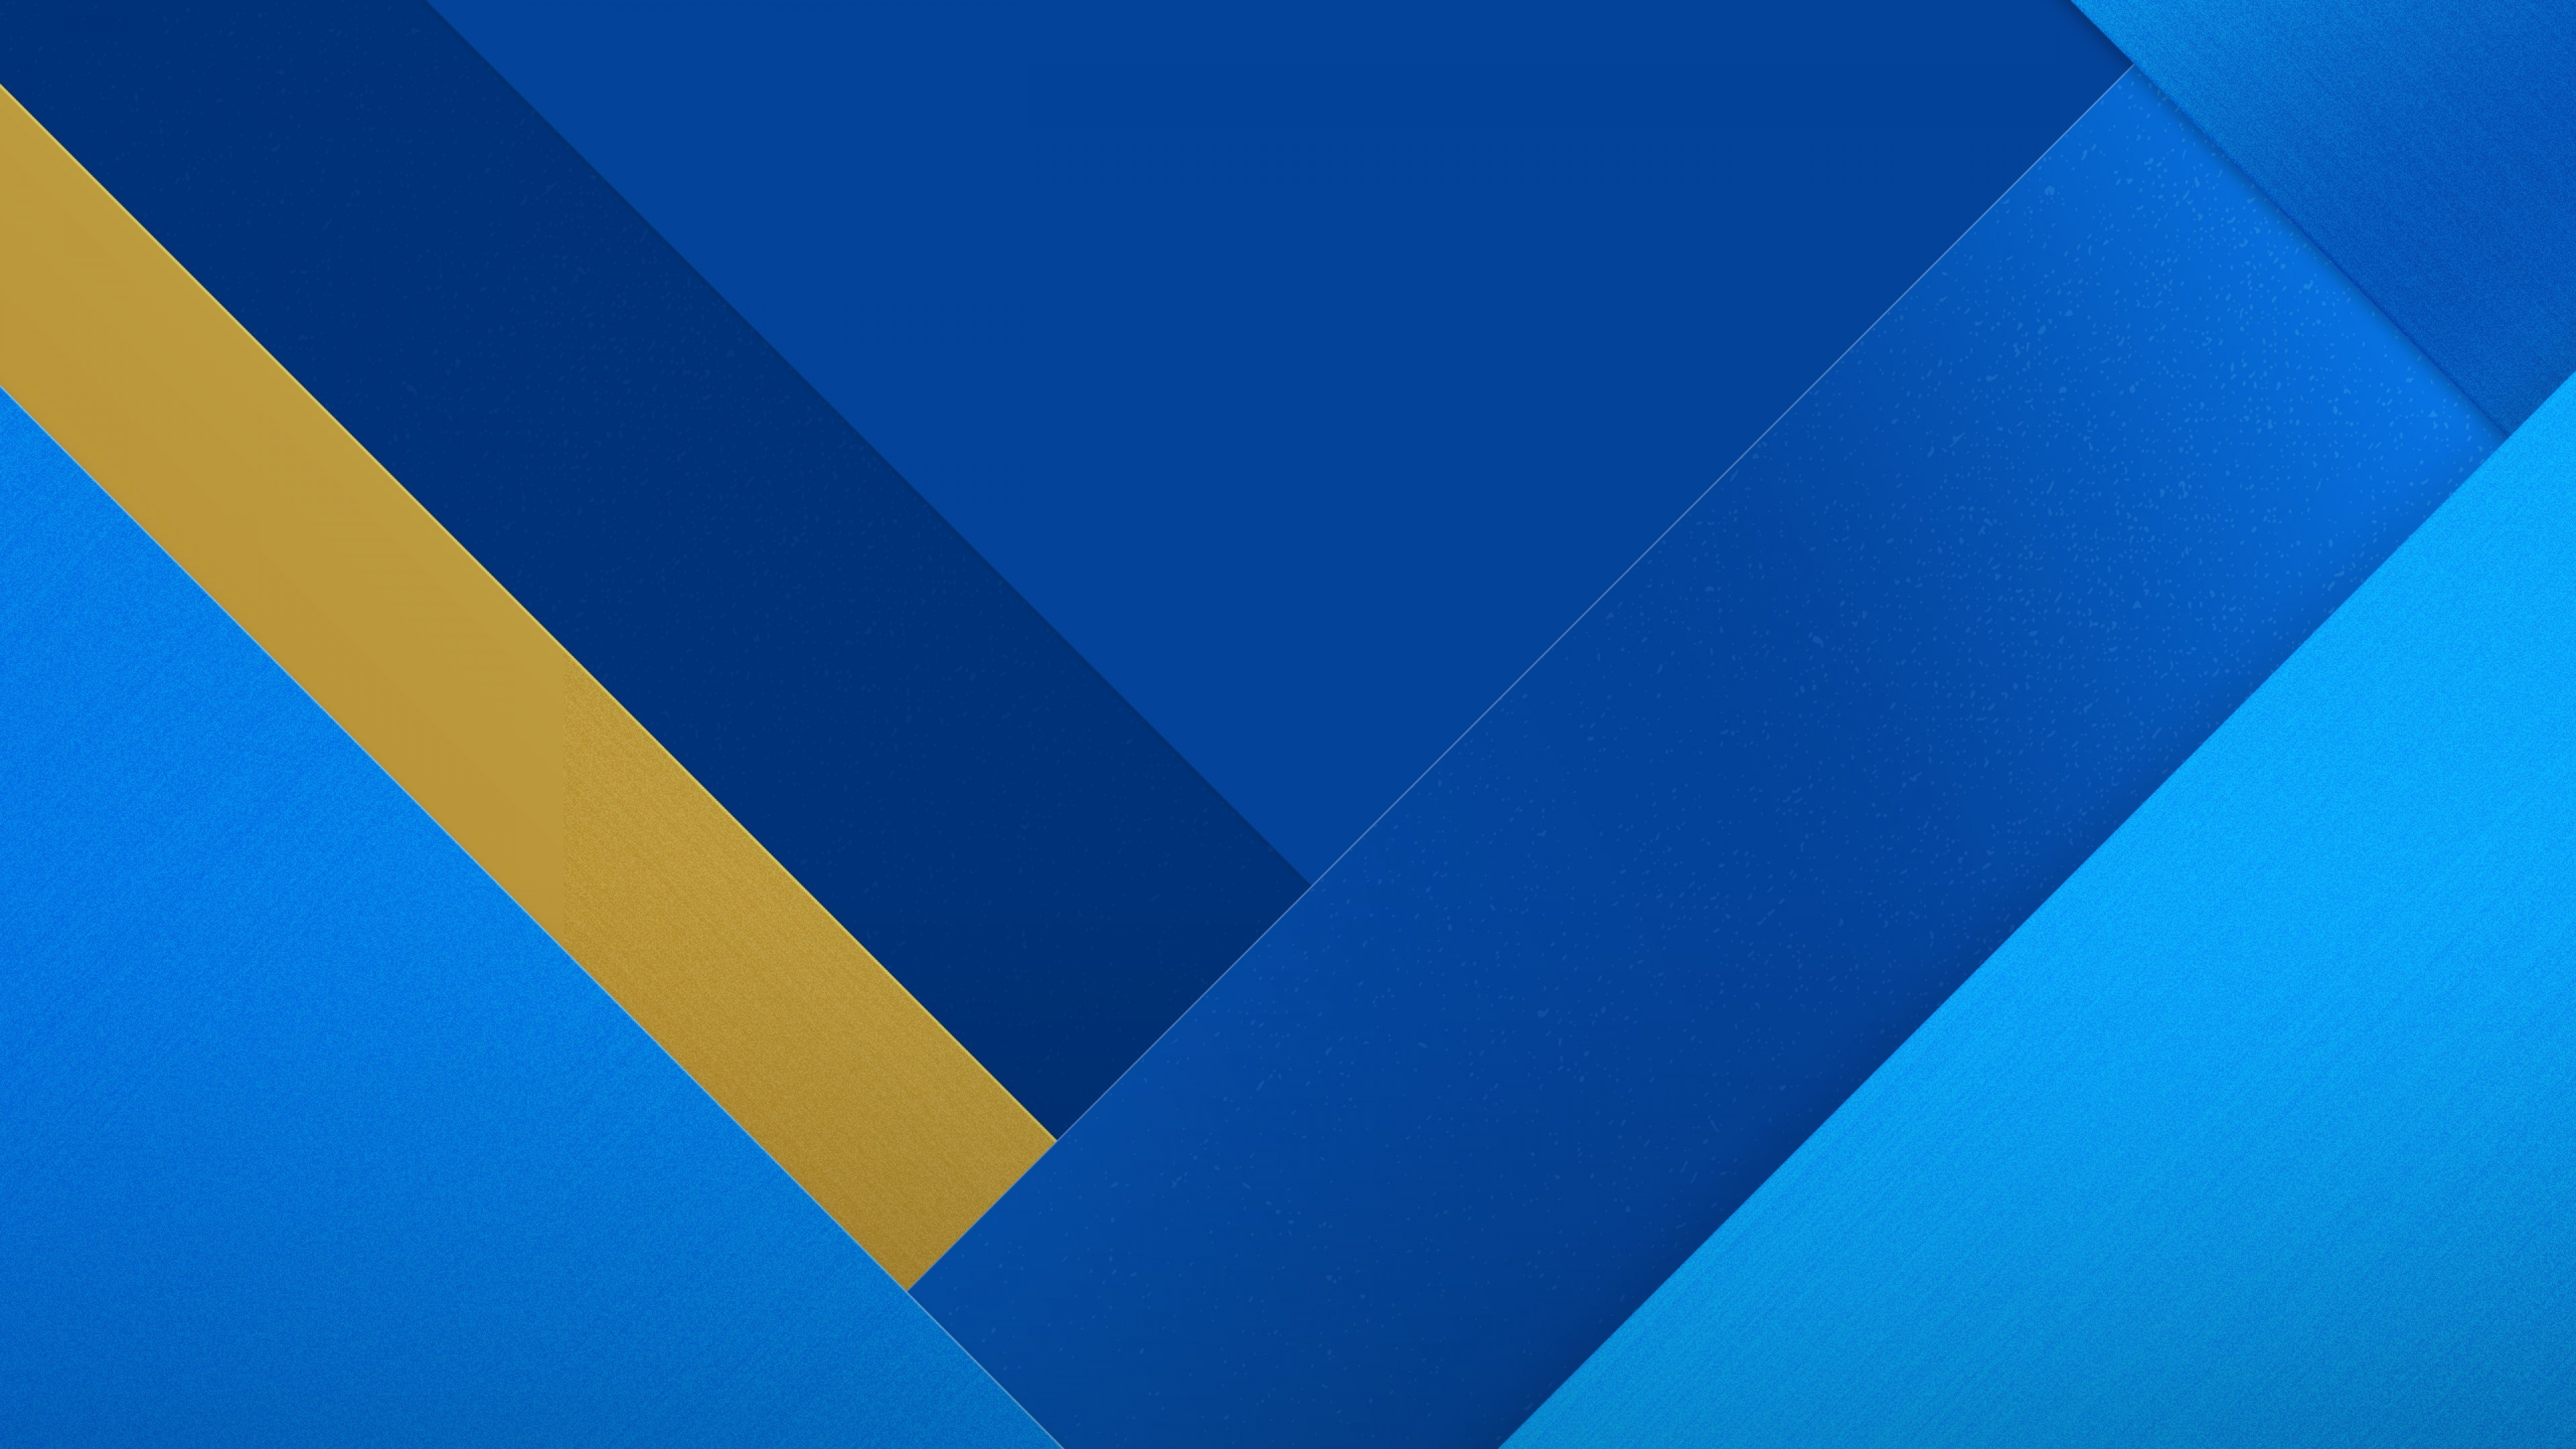 Res: 3840x2160, Geometric, Material design, Stock, Blue, HD